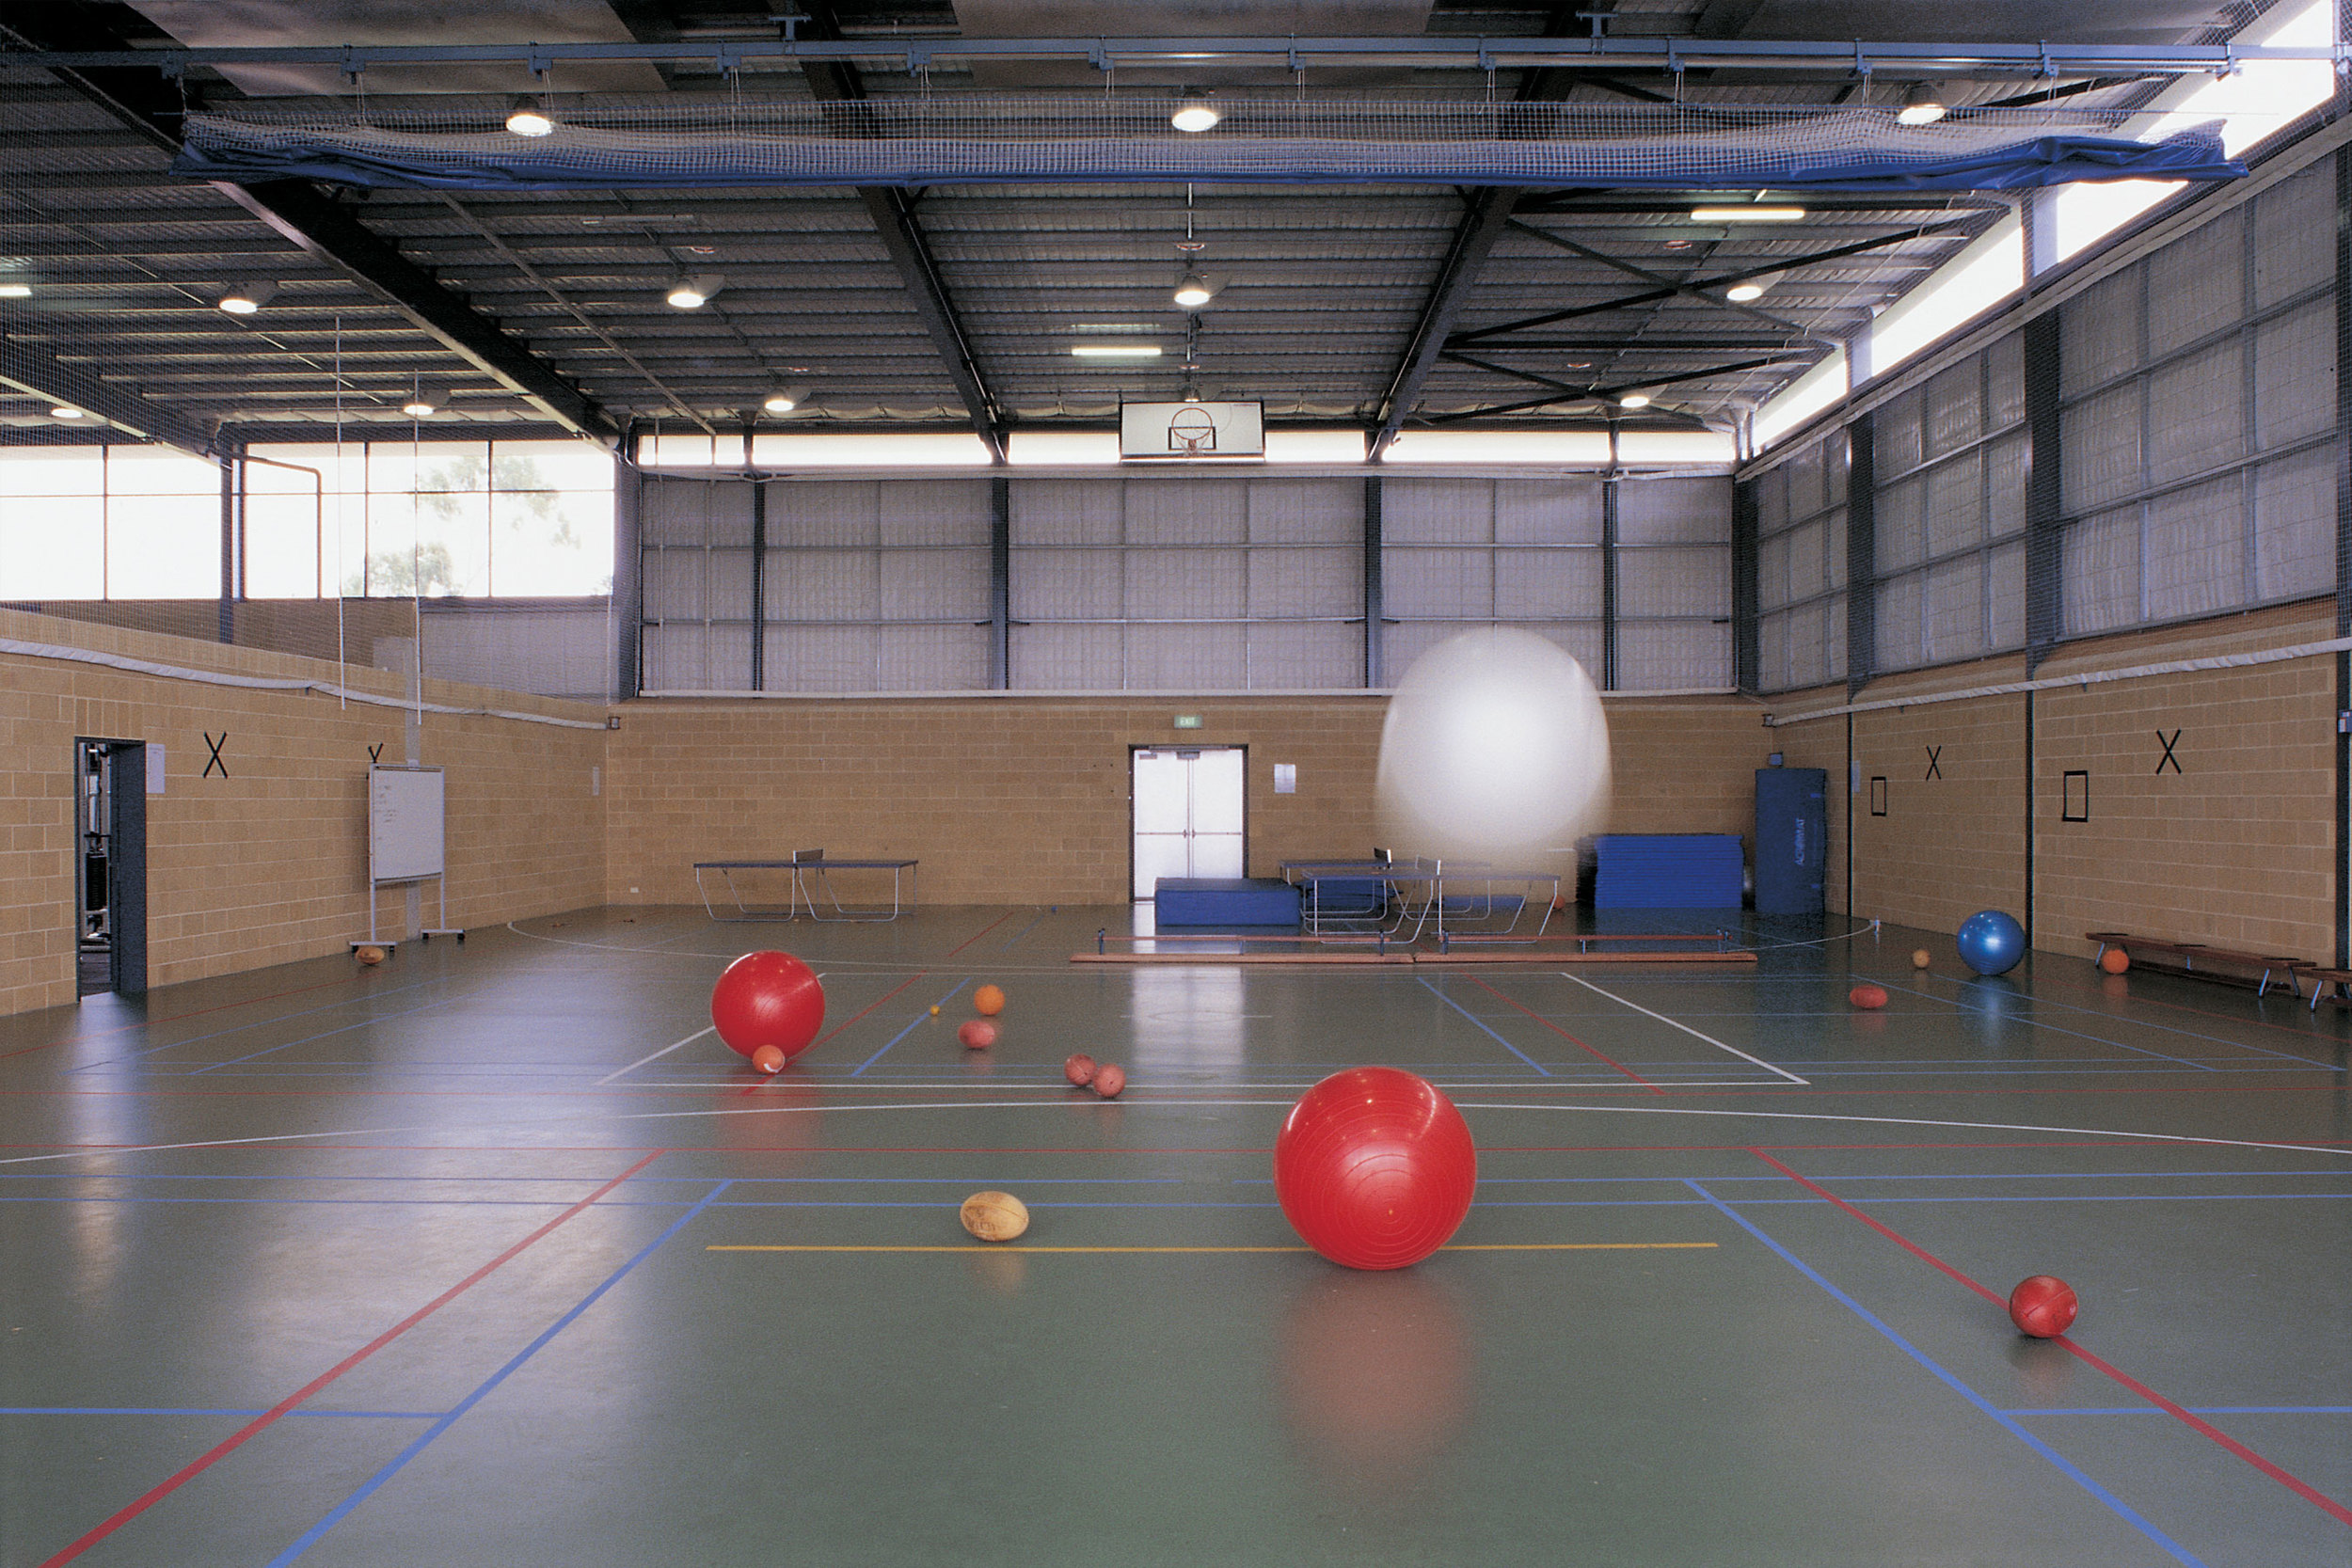 The gymnasium within allows for all-weather training